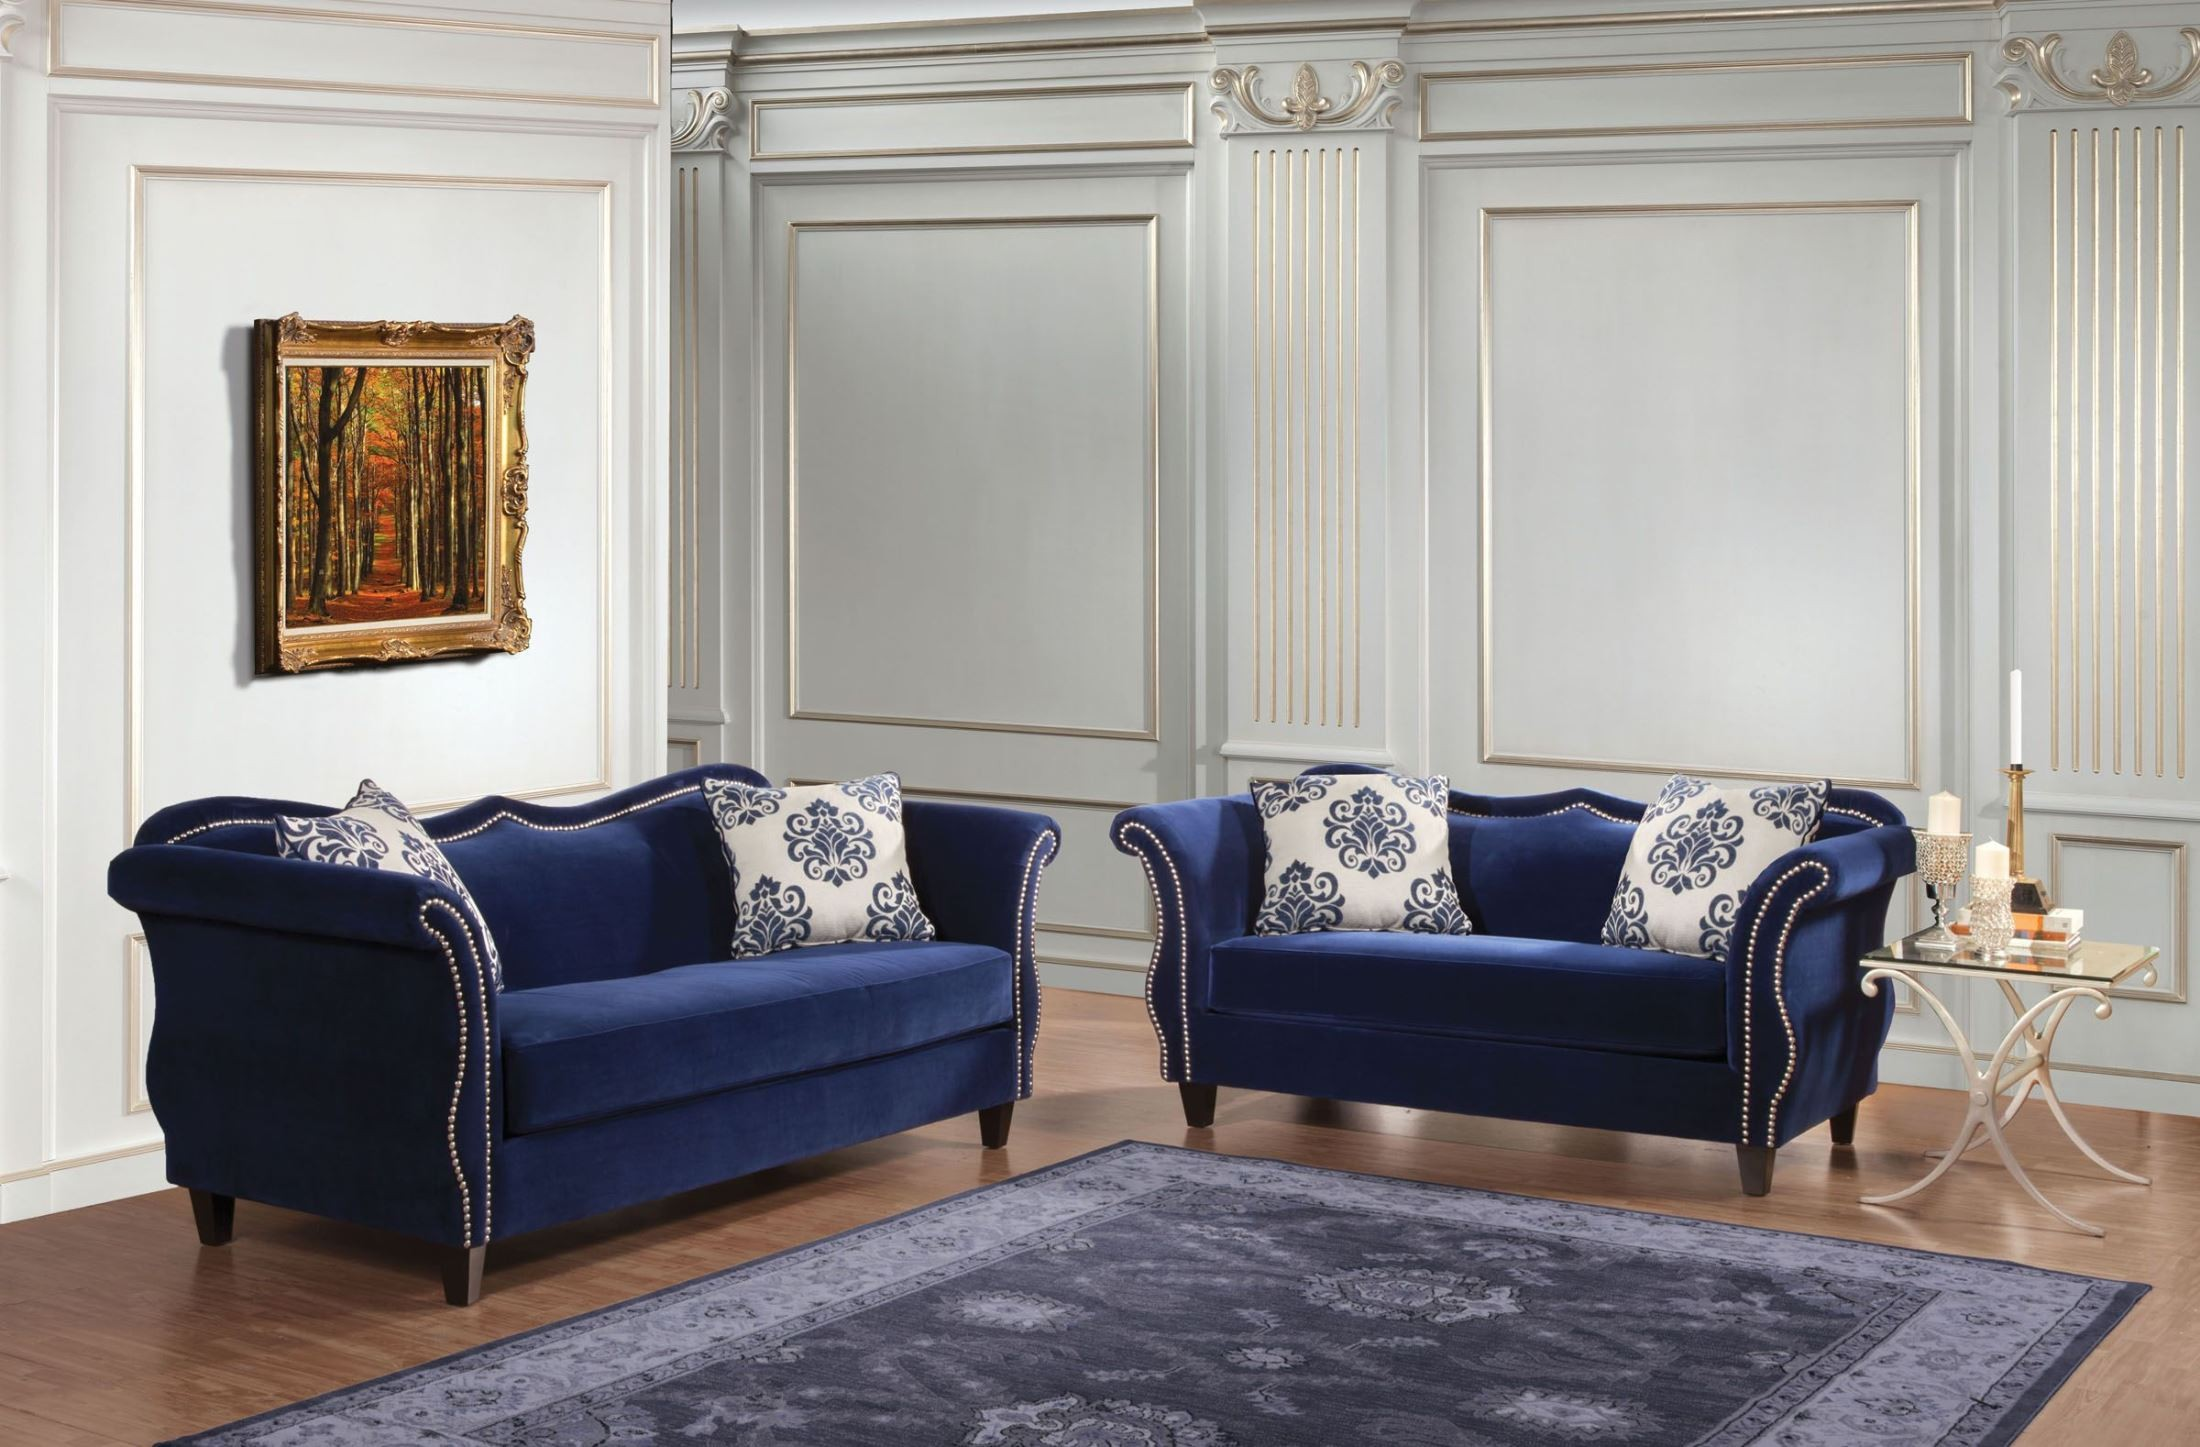 Zaffiro royal blue living room set sm2231 sf furniture for M s living room furniture